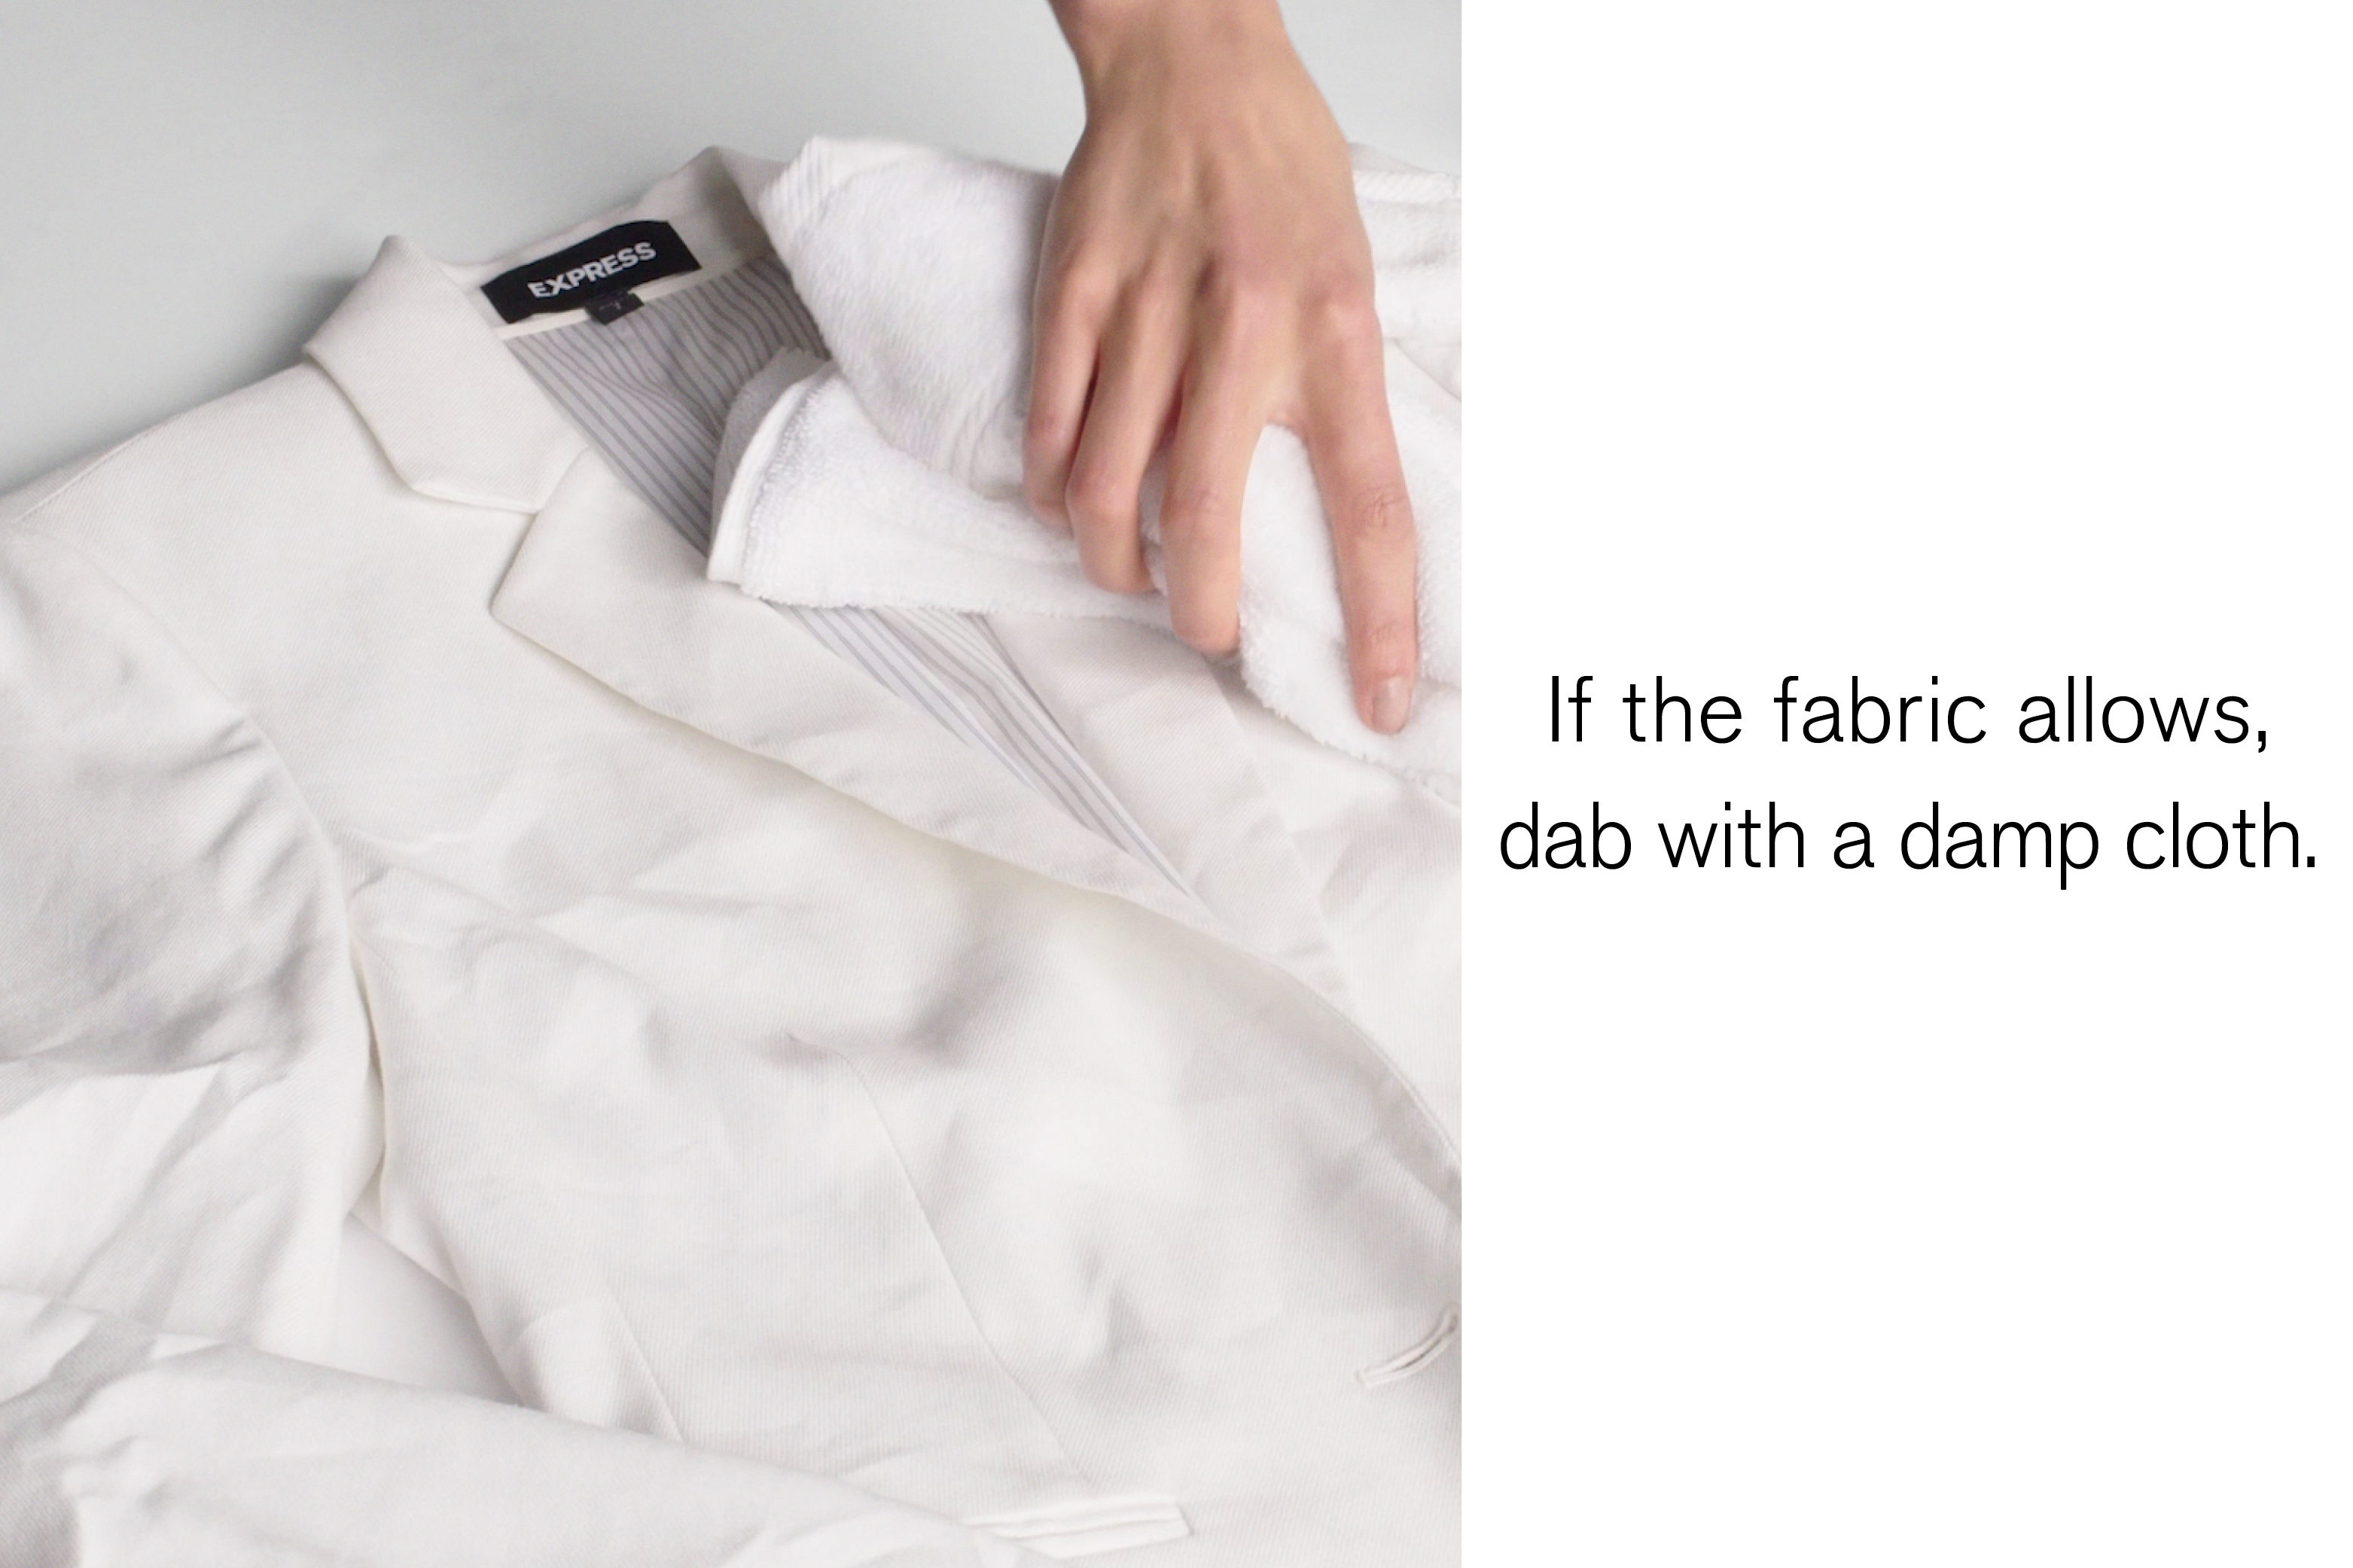 if-the-fabric-allows-dab-with-a-damp-cloth